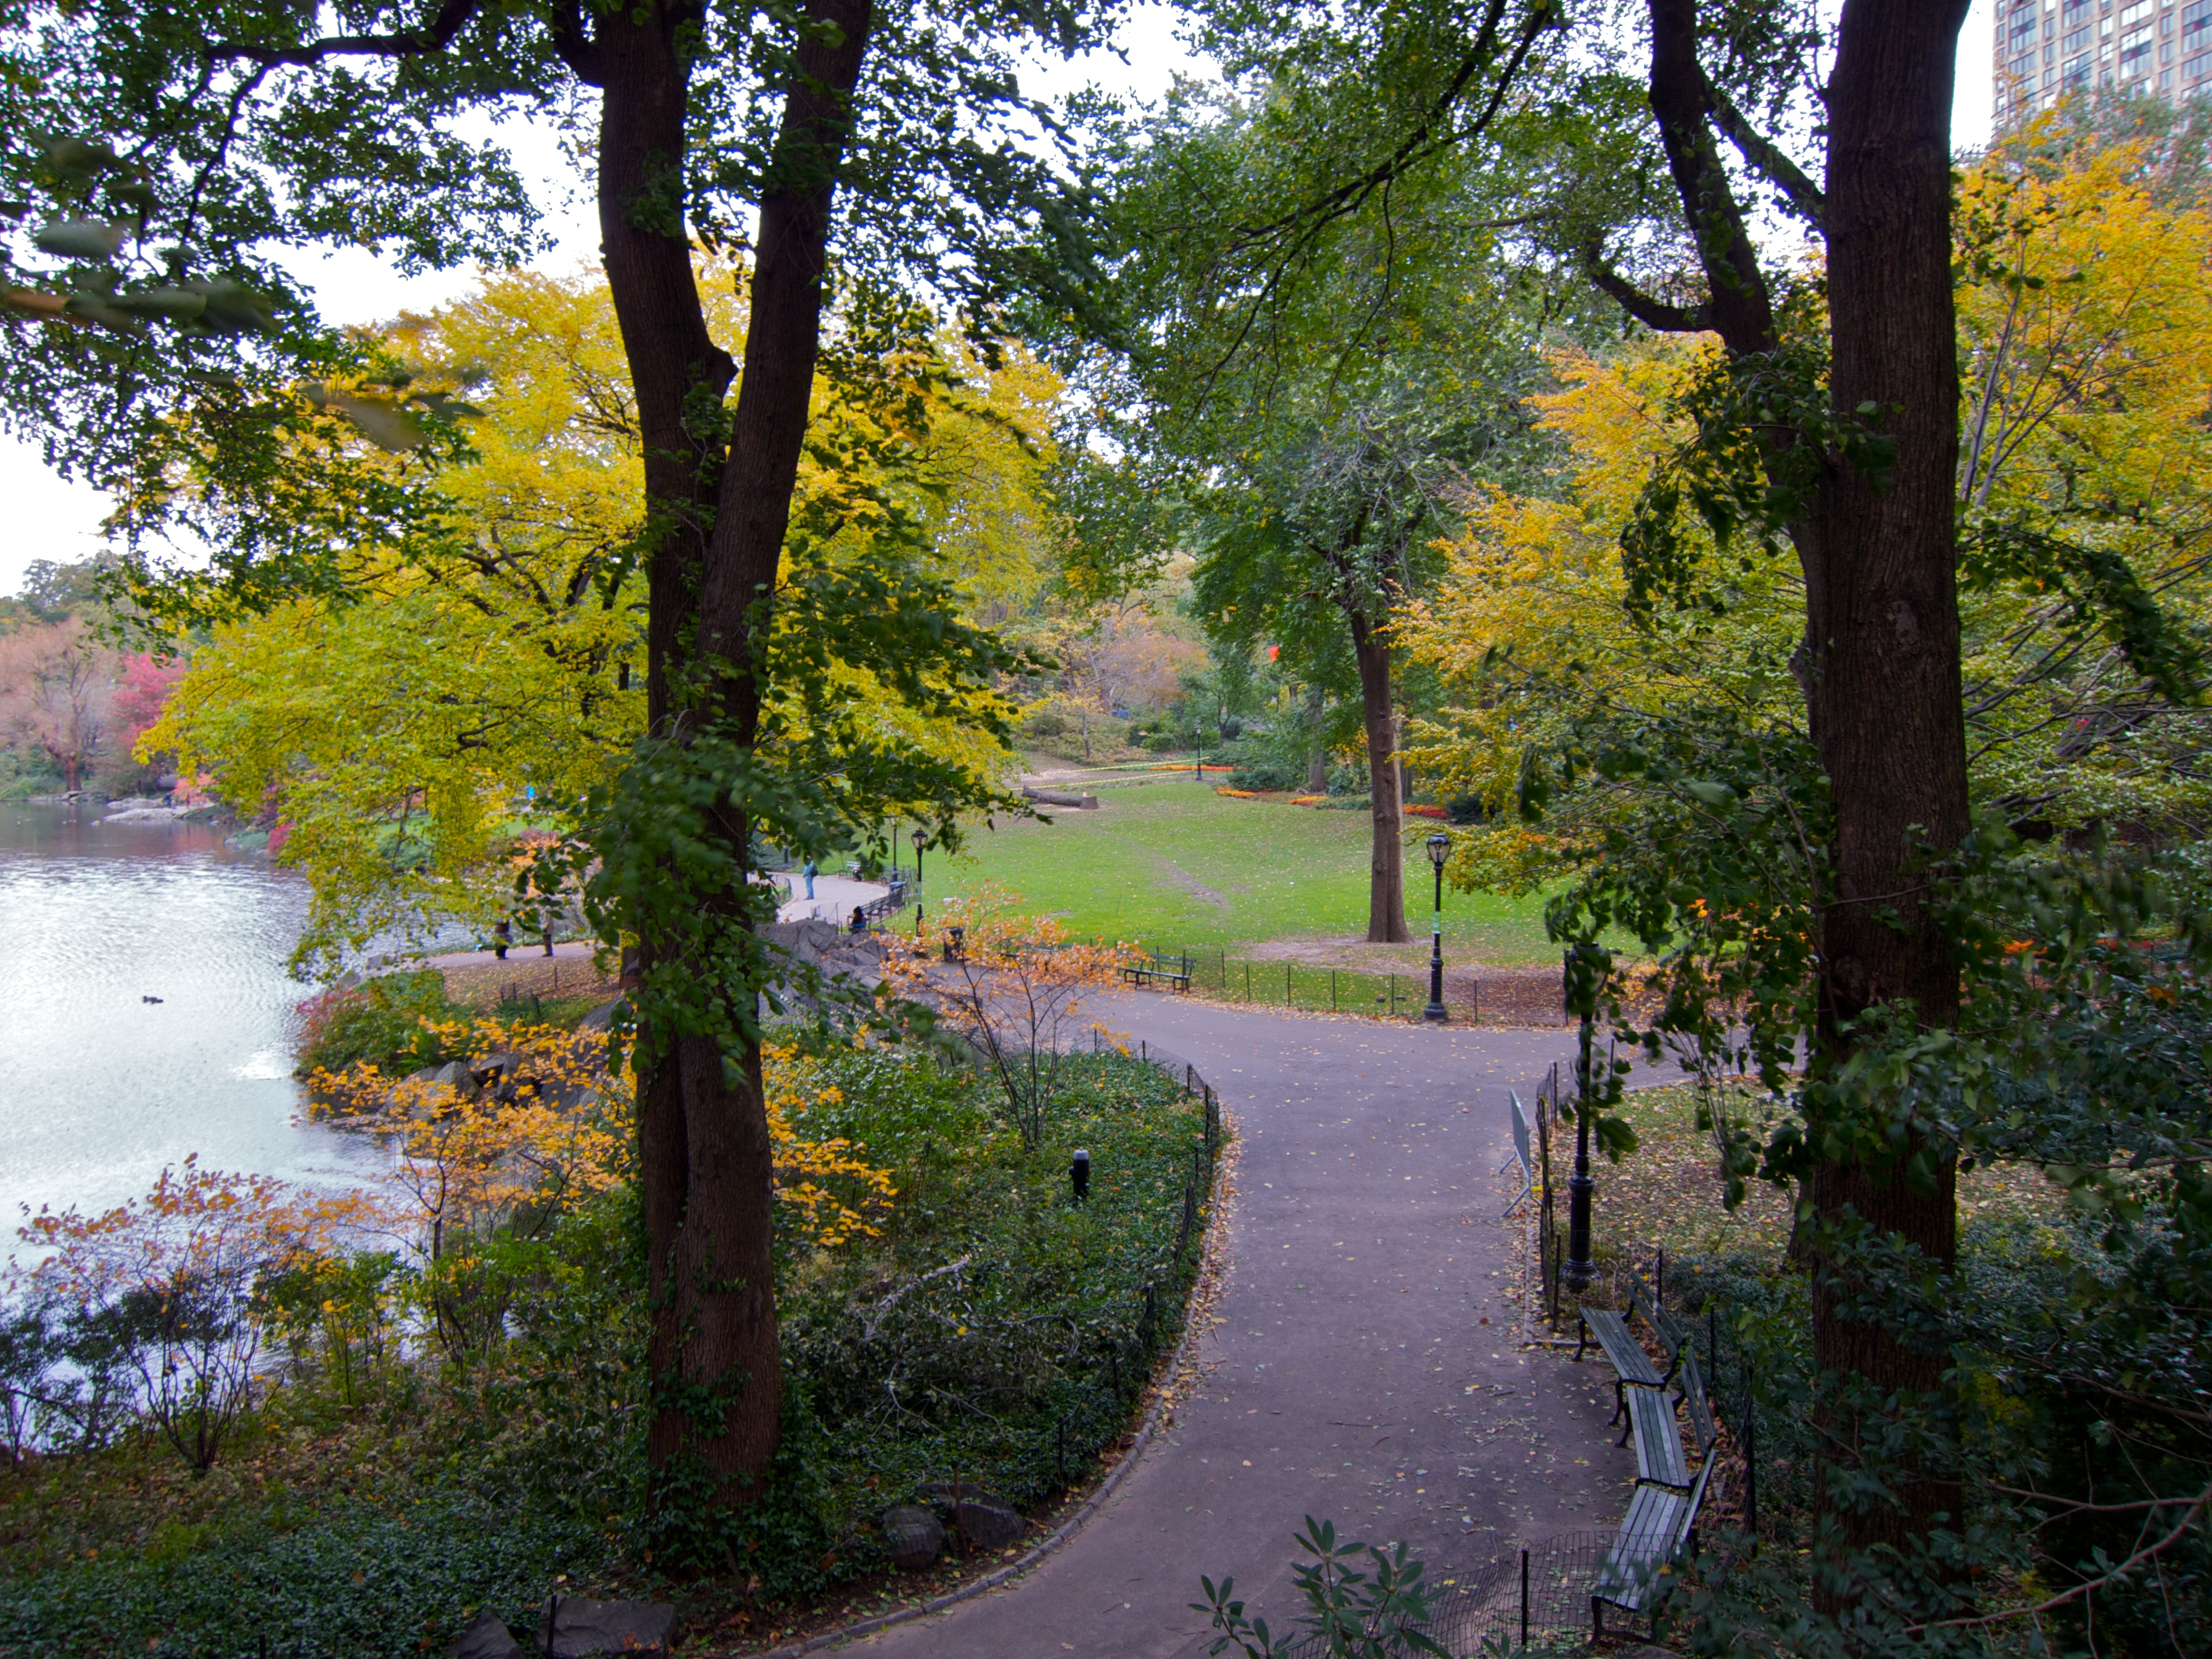 Day 316 - Fall In Central Park